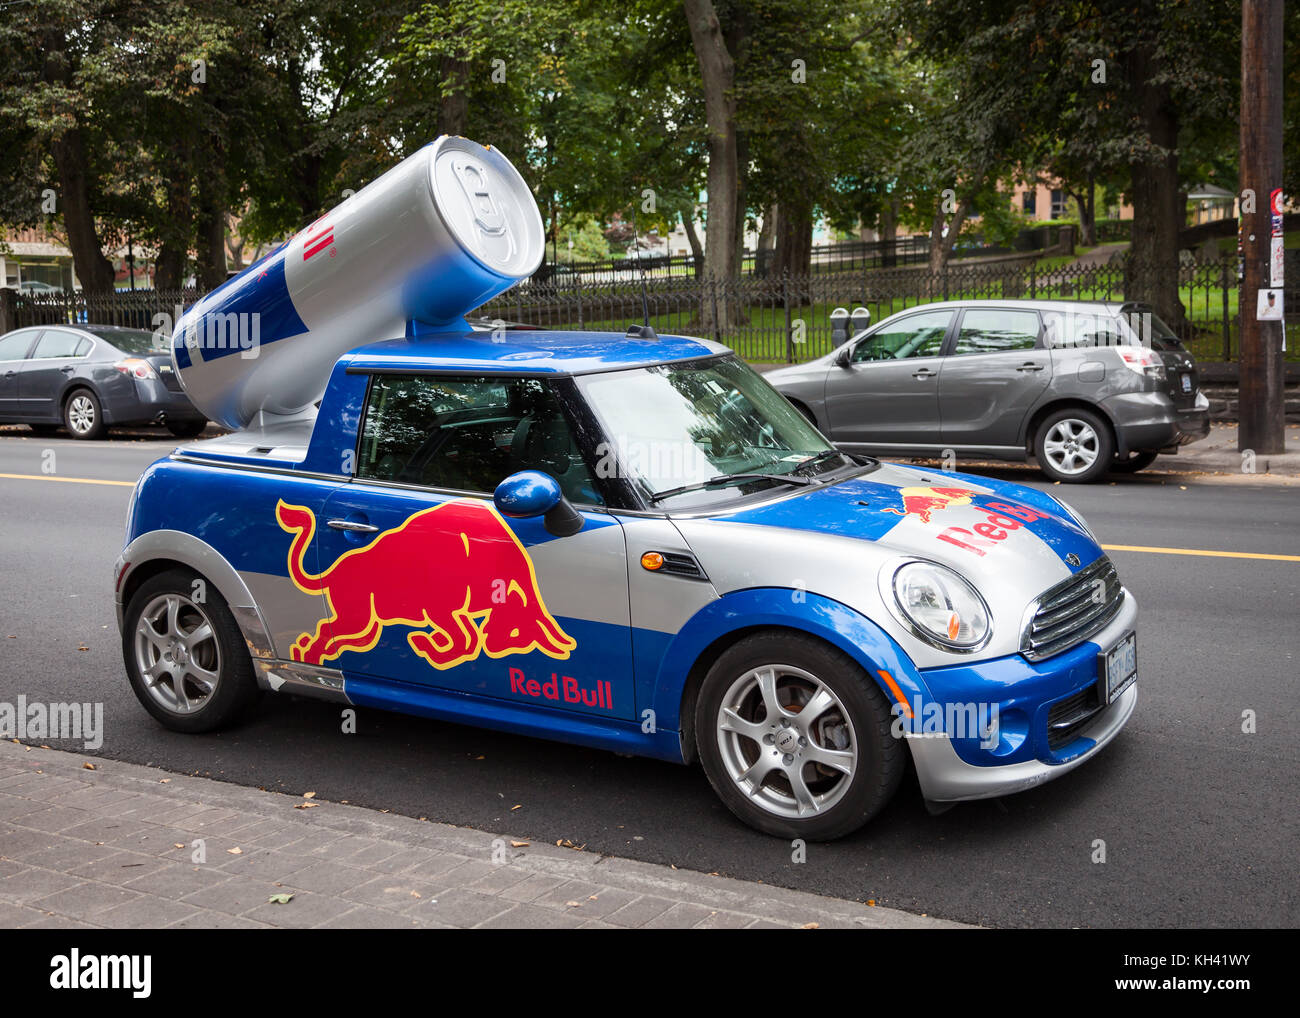 A Red Bull Mini Cooper Publicity Car With A Can Of Red Bull Drink In